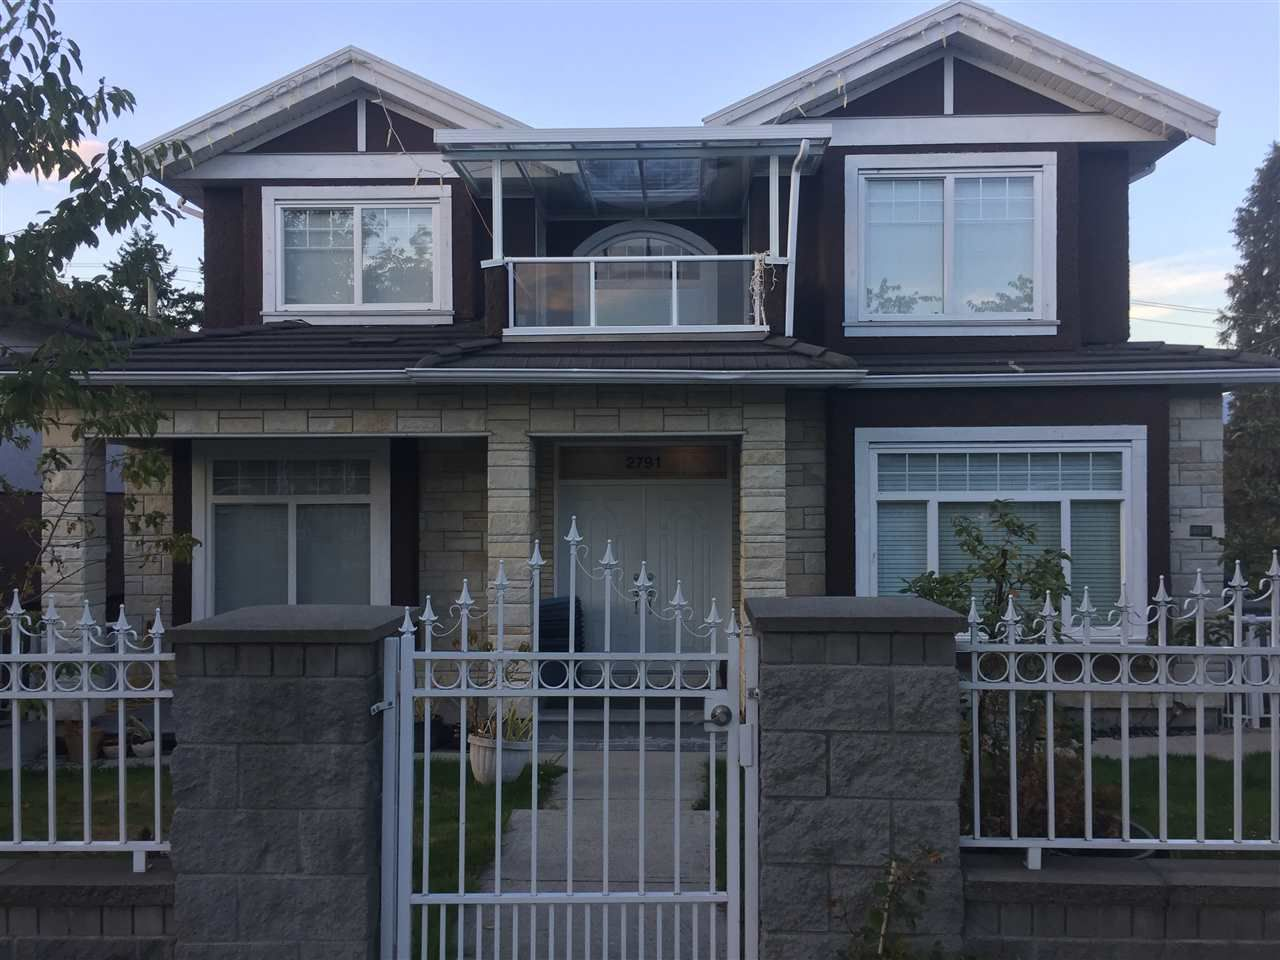 Main Photo: 2791 E 22ND Avenue in Vancouver: Renfrew Heights House for sale (Vancouver East)  : MLS®# R2212664